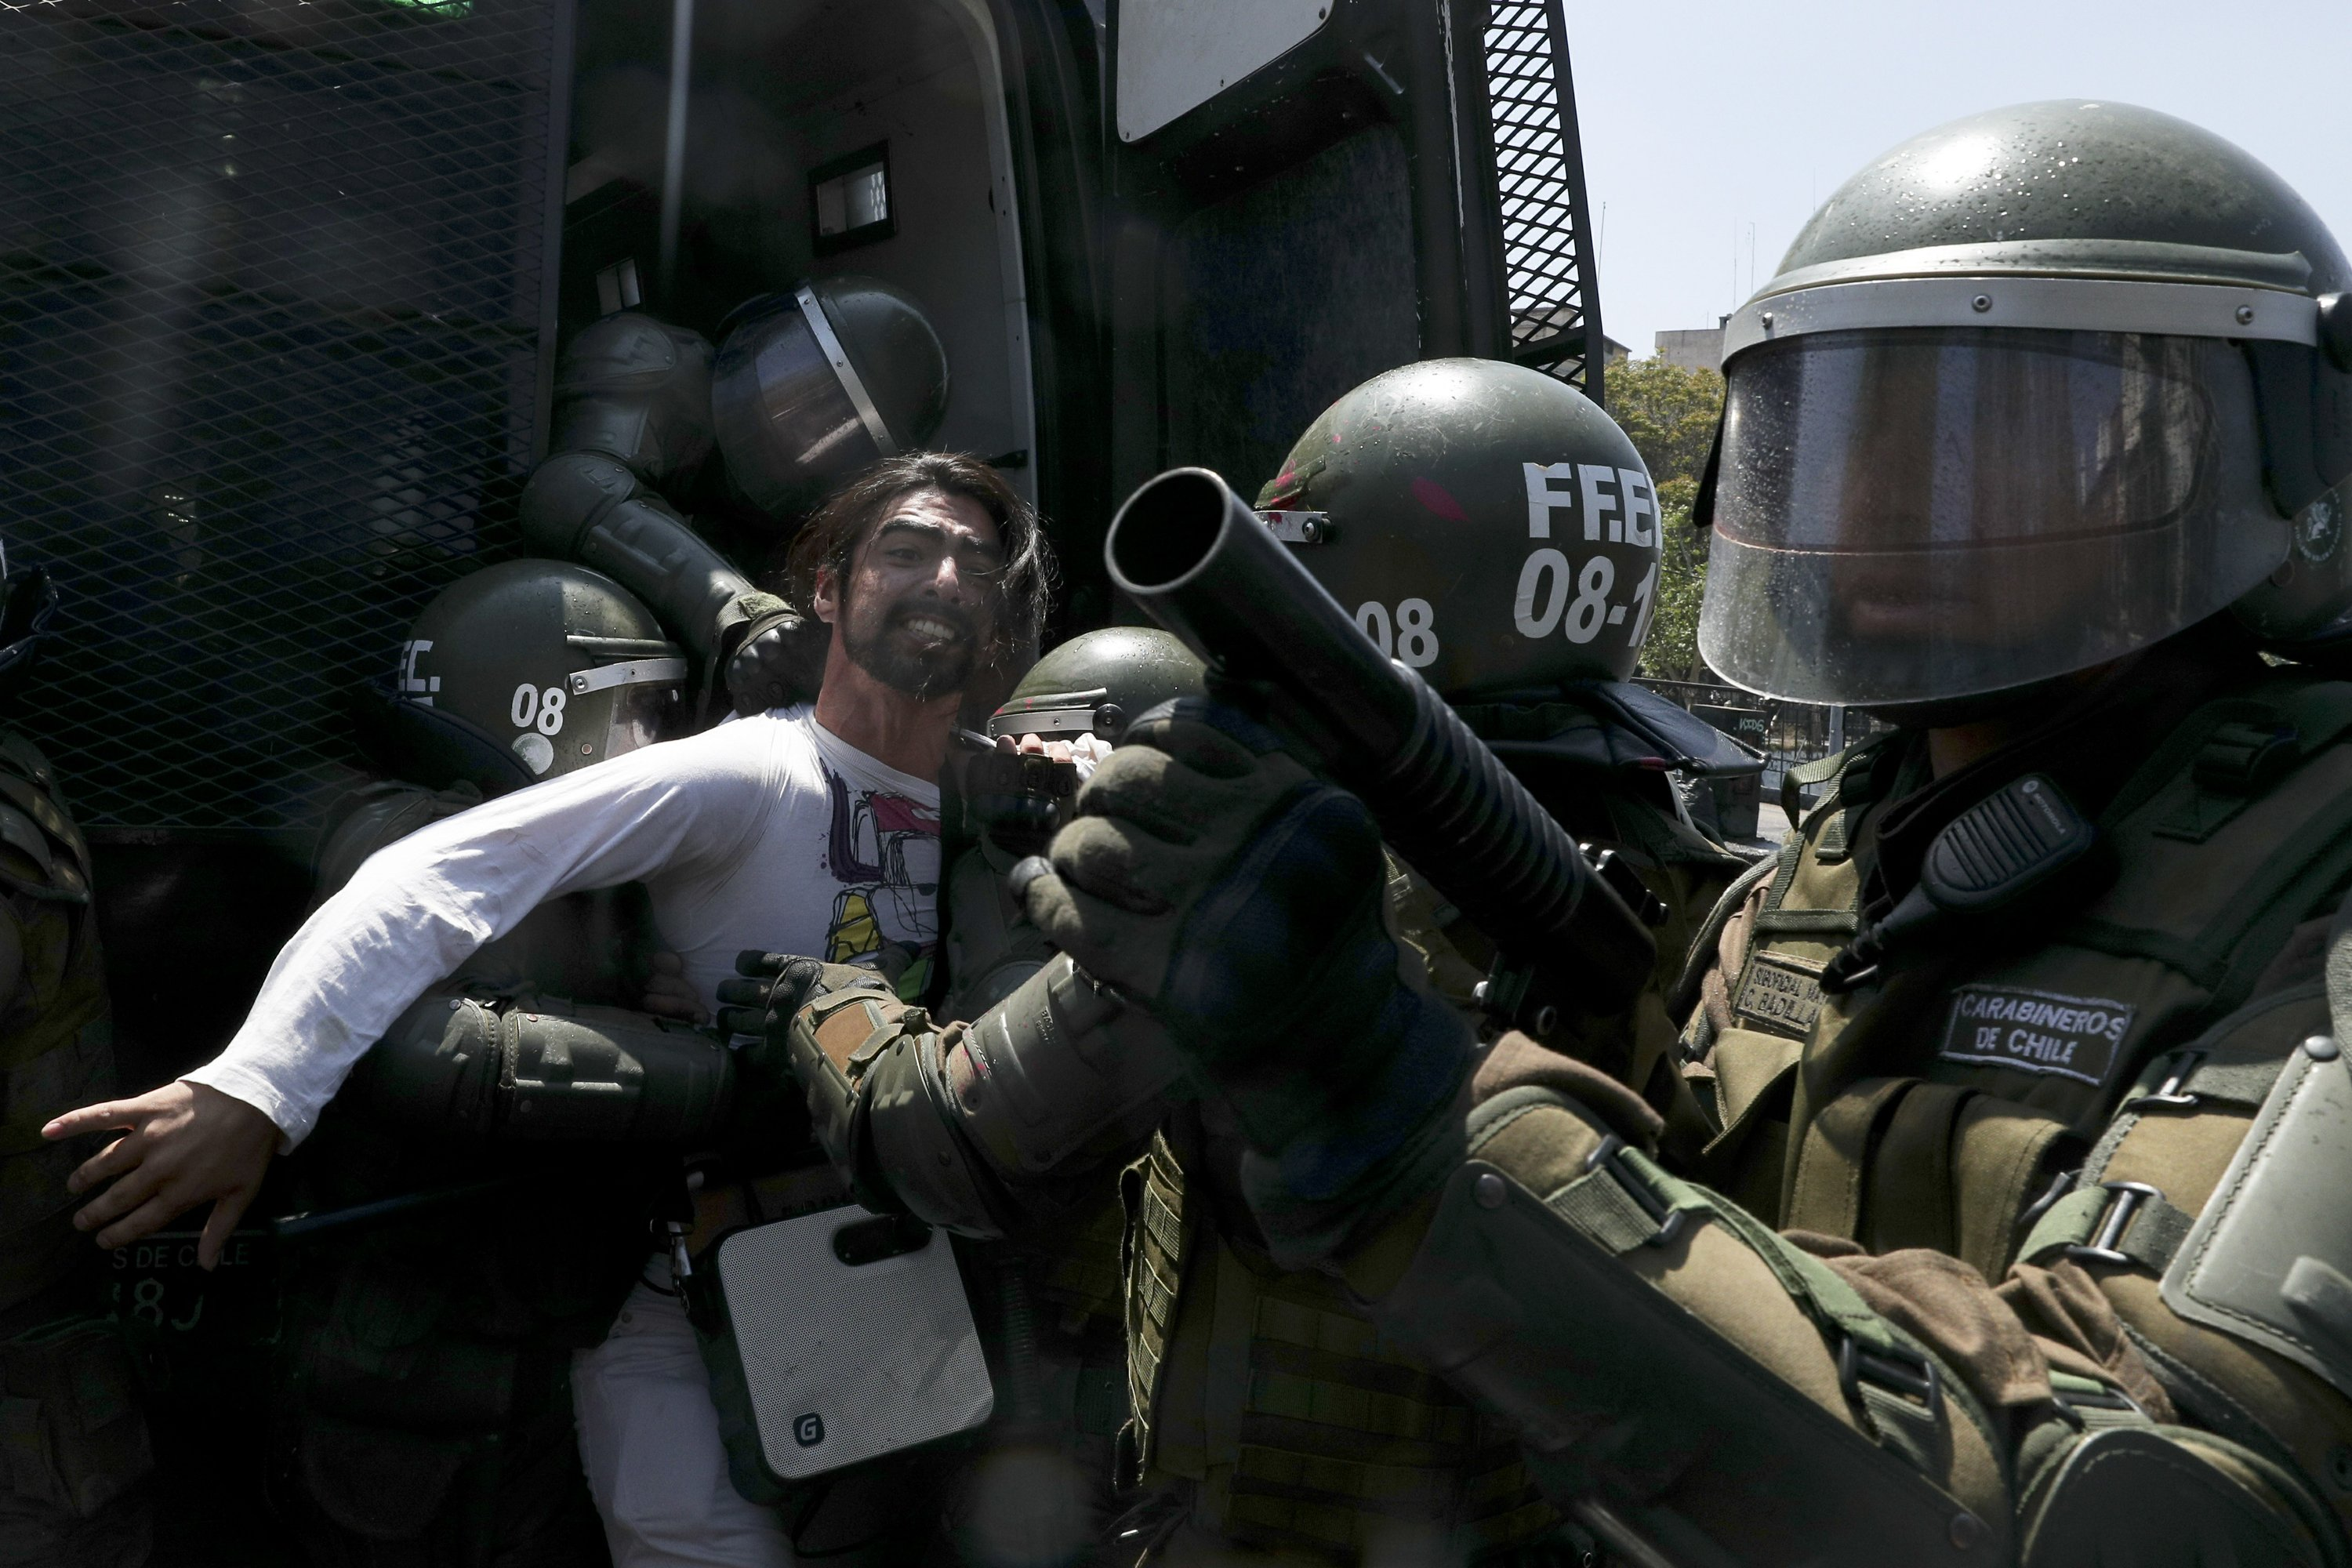 11 killed in protests in Chile: official